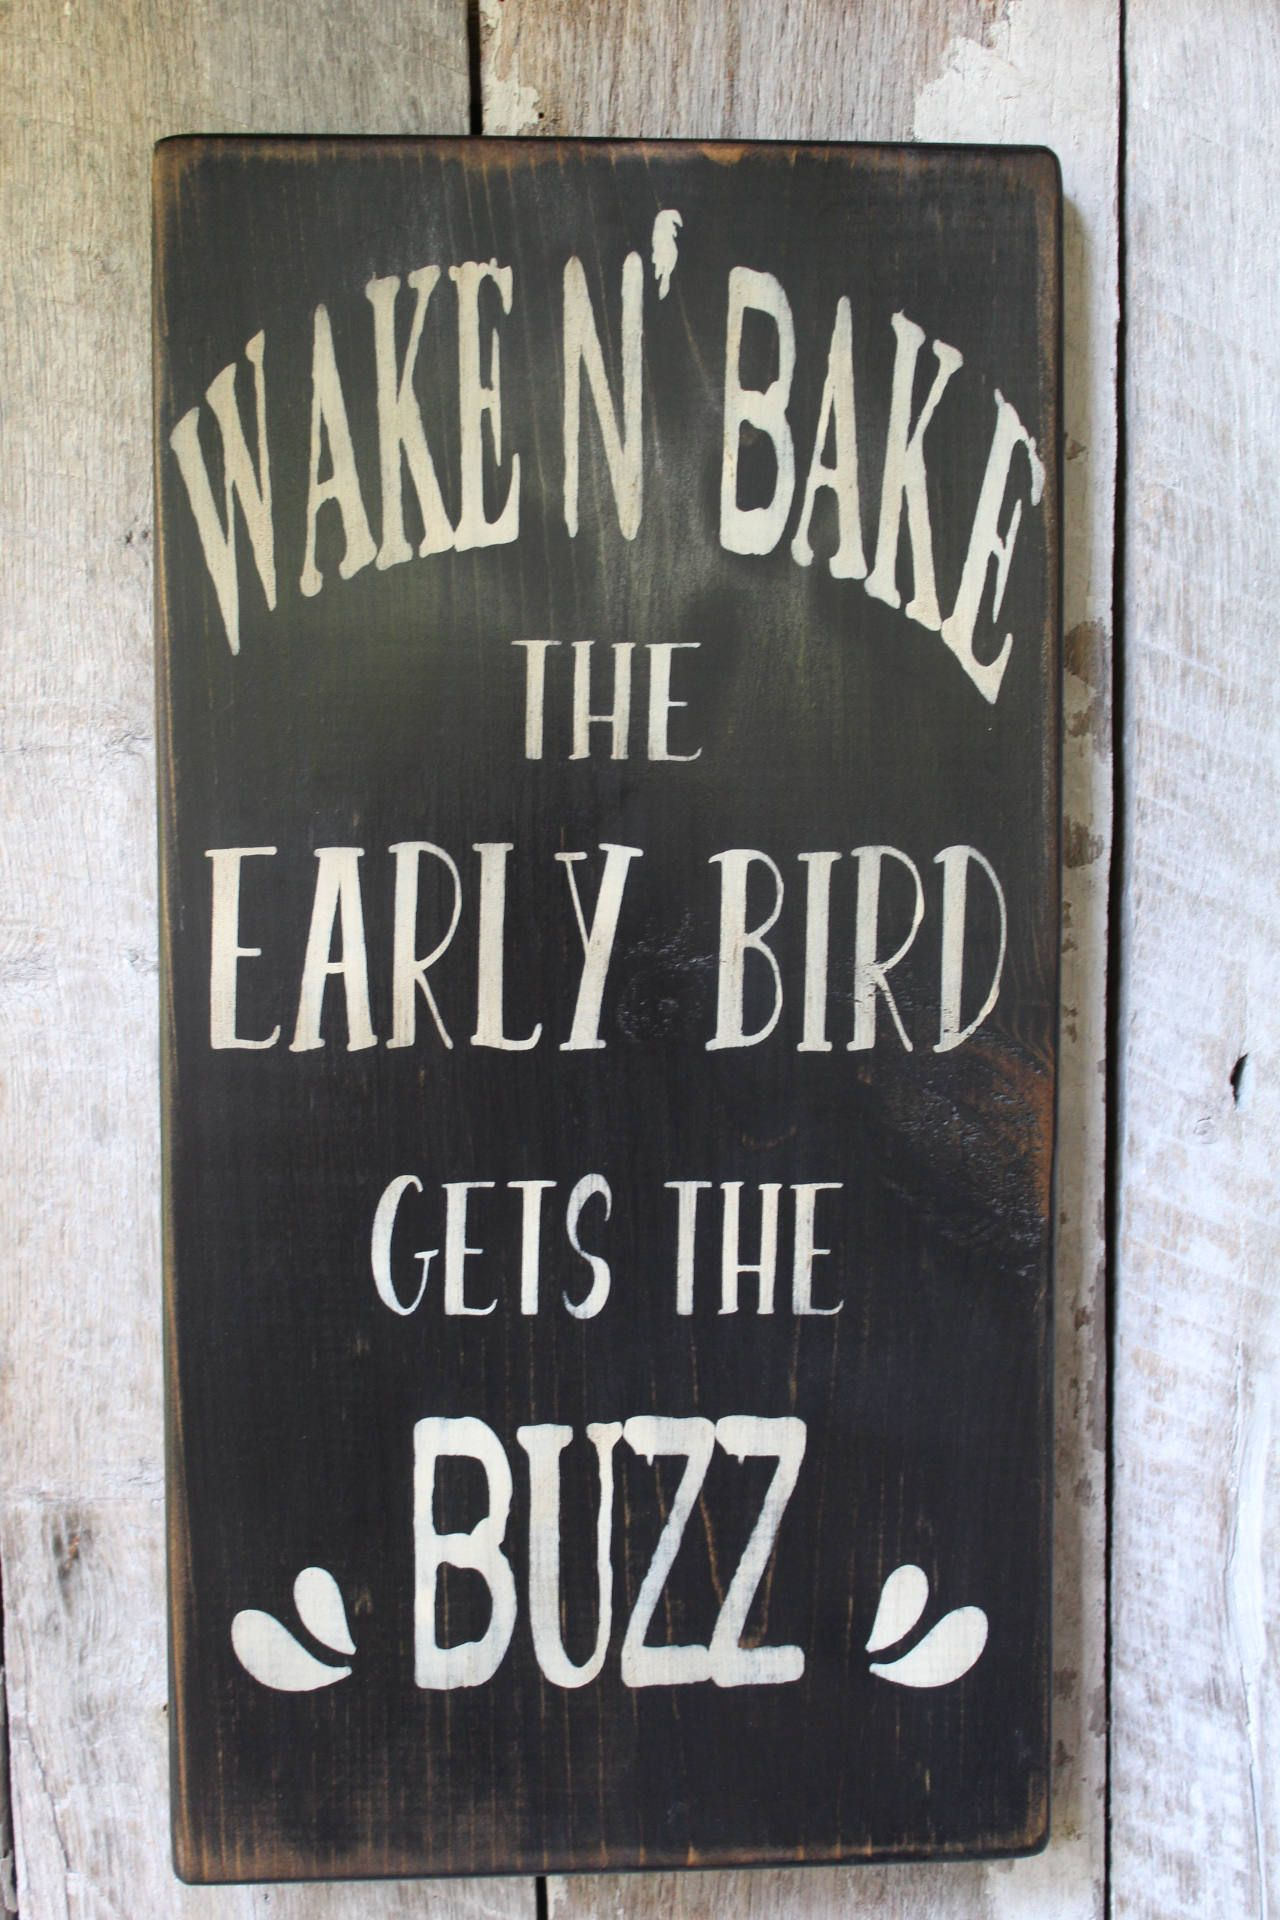 Wake And Bake Early Bird Catches The Buzz Weed Pot High Hoodie Pullover